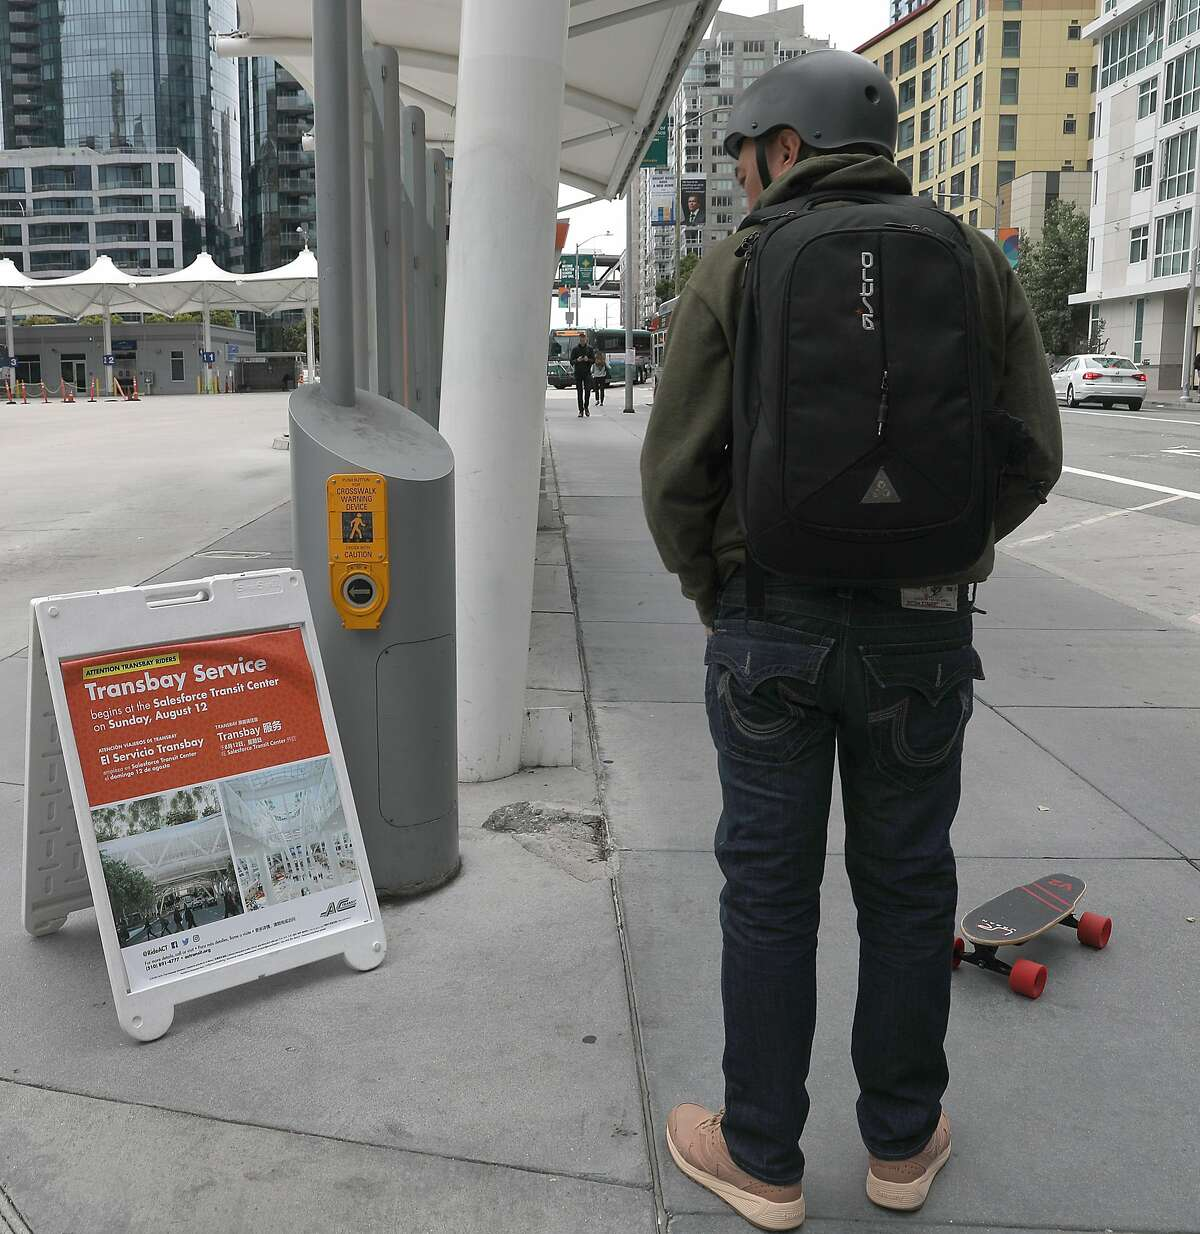 John Diamonon commuting from Union City reads about the moving schedule of The Temporary Transbay Terminal which is going to become a park and affordable housing after the new terminal opens after today on Wednesday, Aug. 8, 2018 in San Francisco, Calif.